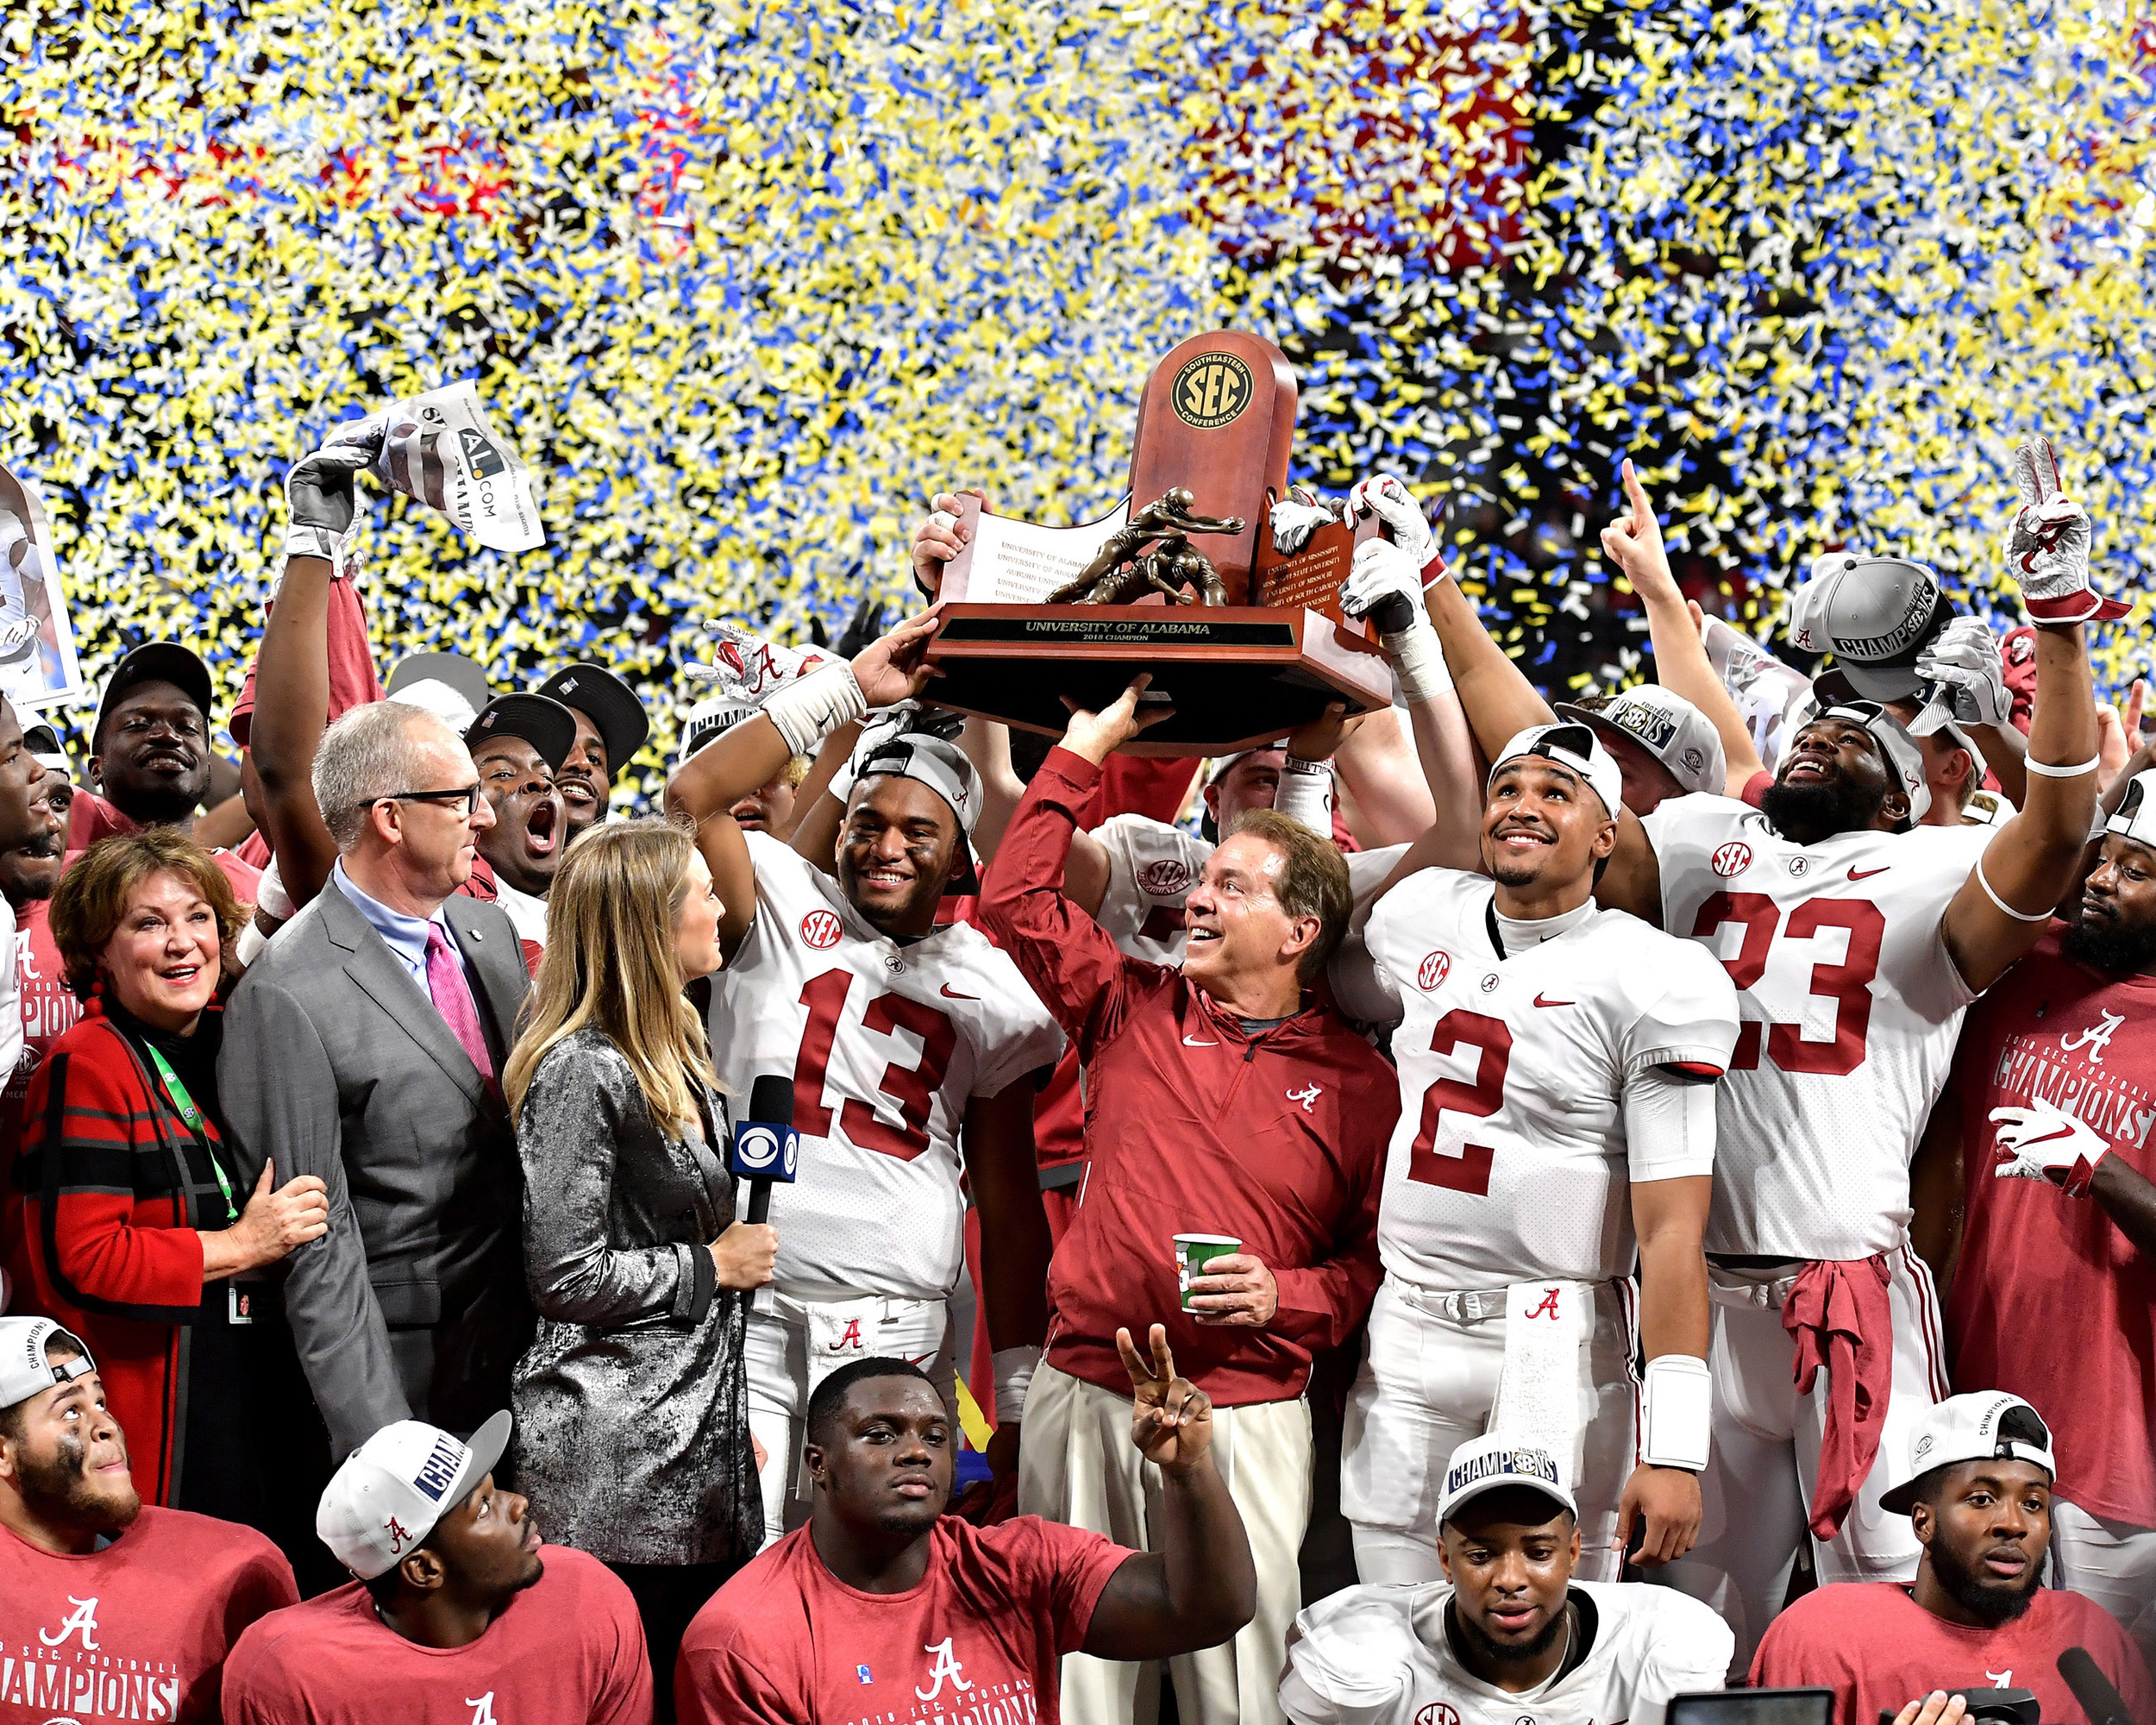 Alabama teammates and head coach Nick Saban celebrate another SEC Championship on Dec. 1, 2018, at Mercedes-Benz Stadium in Atlanta, Ga., on Dec. 1, 2018. Alabama wins 35-28. (Photo by Lee Walls)